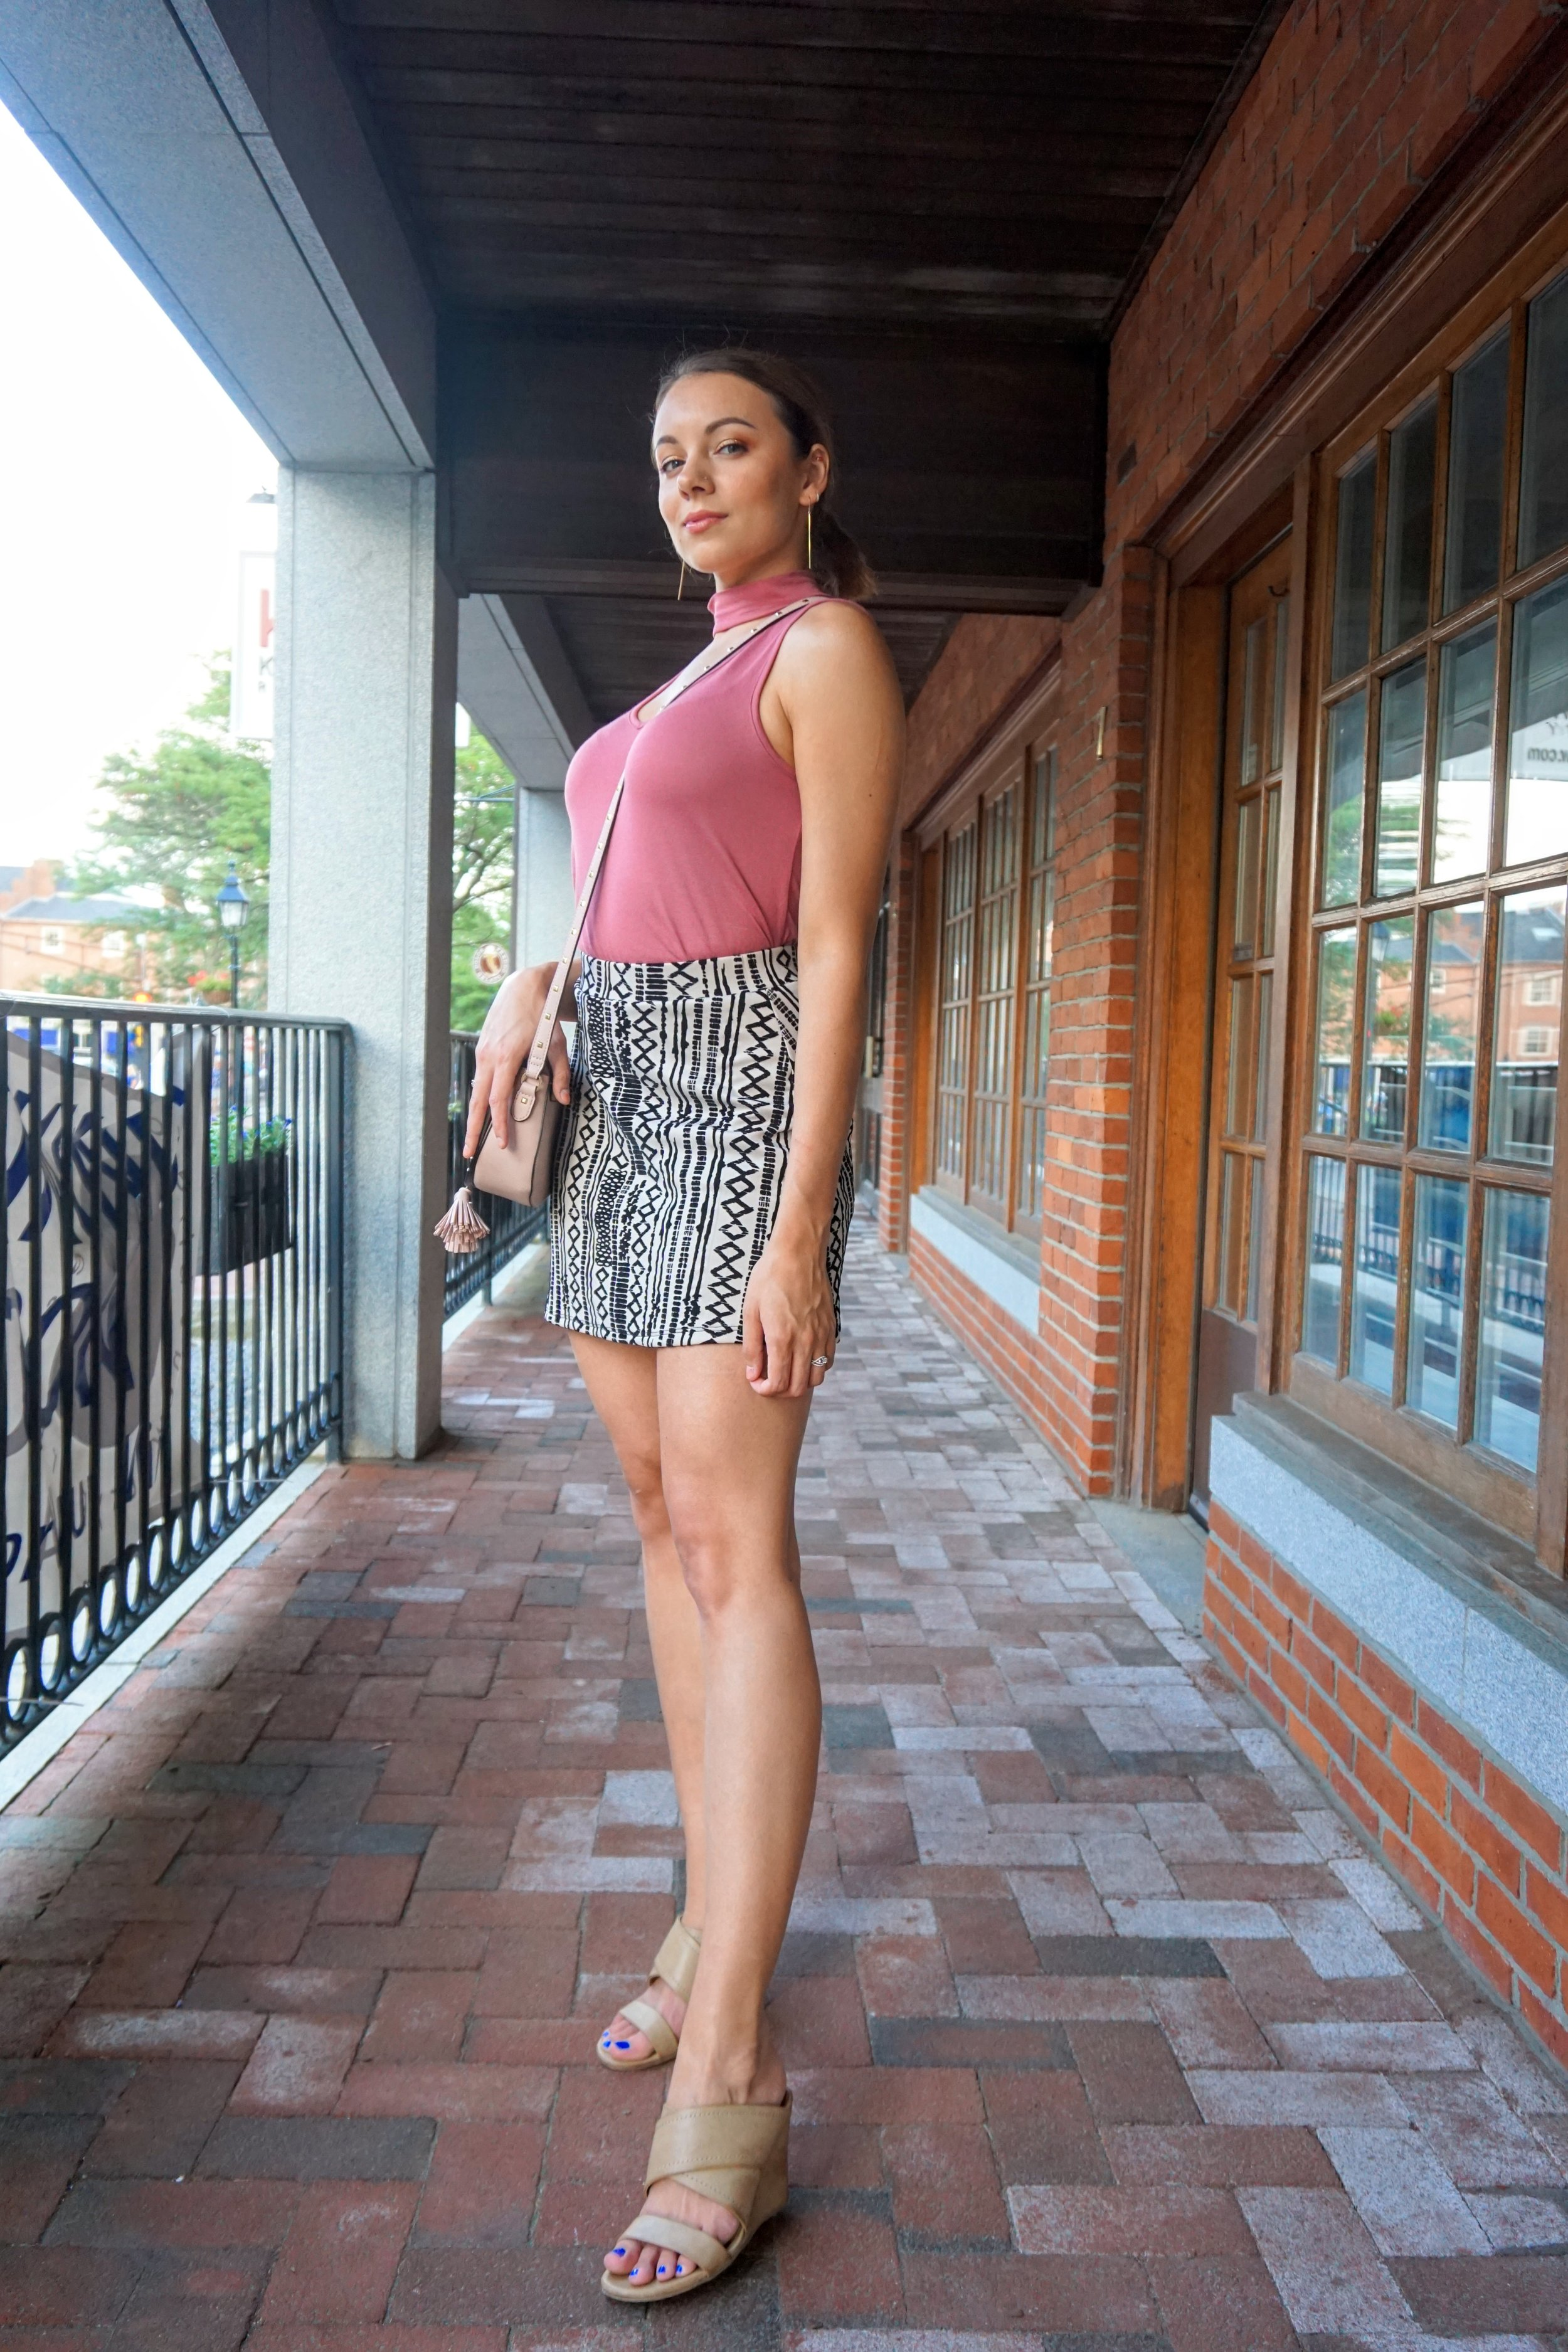 A blogger posing near the shops. She is wearing a pink choker top, nude and black skirt, nude wedges, and carries a pink victoria's secret bag.